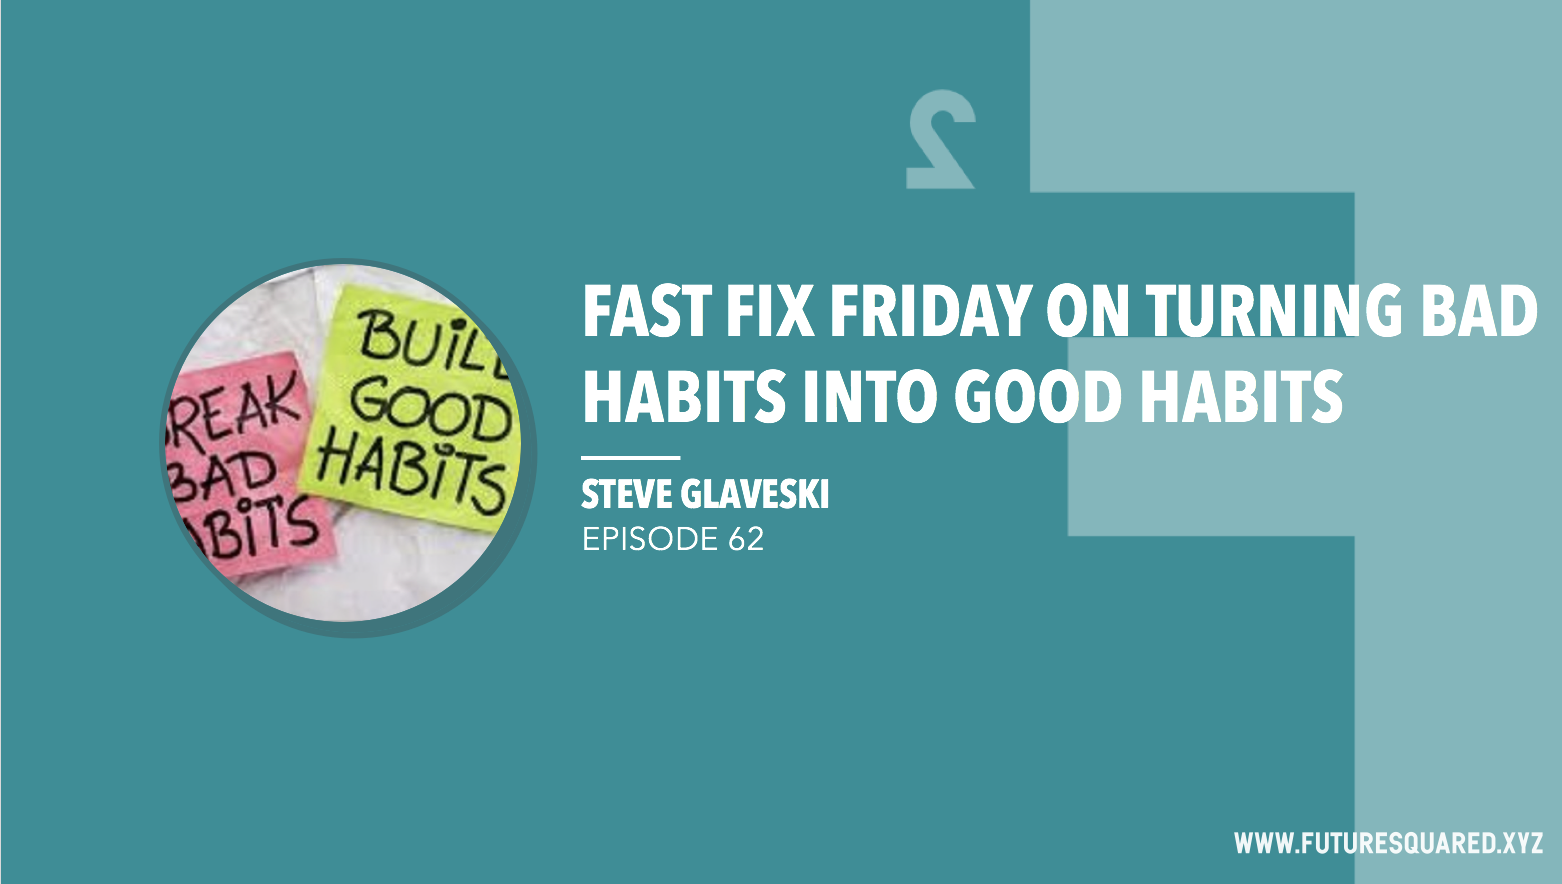 Future Squared Episode #62: Fast Fix Friday on Turning Bad Habits into Good Habits